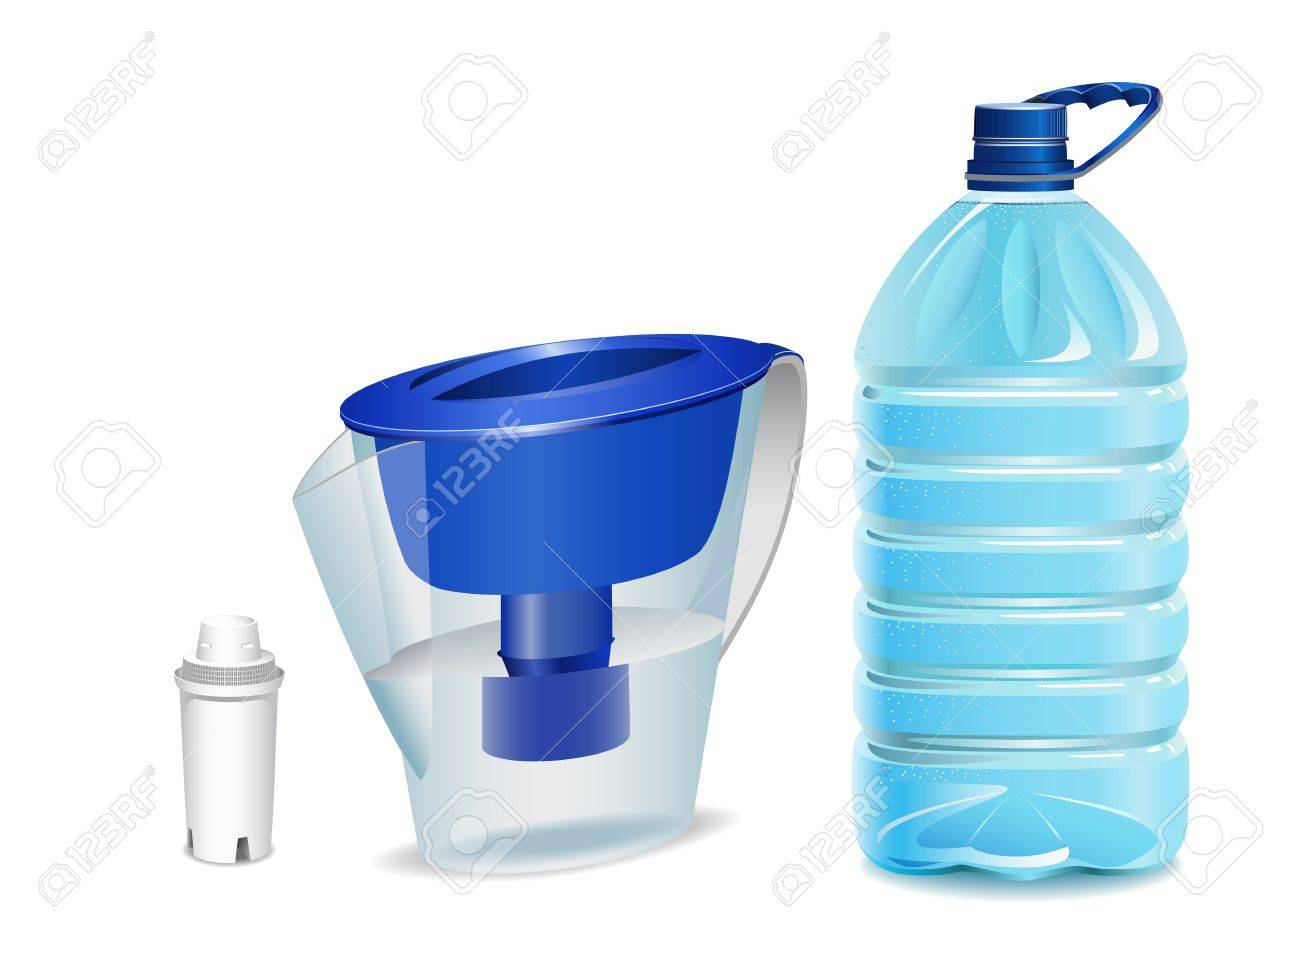 Water filter, filter cartridge and a bottle of water are shown in the picture. Stock Vector - 9445993